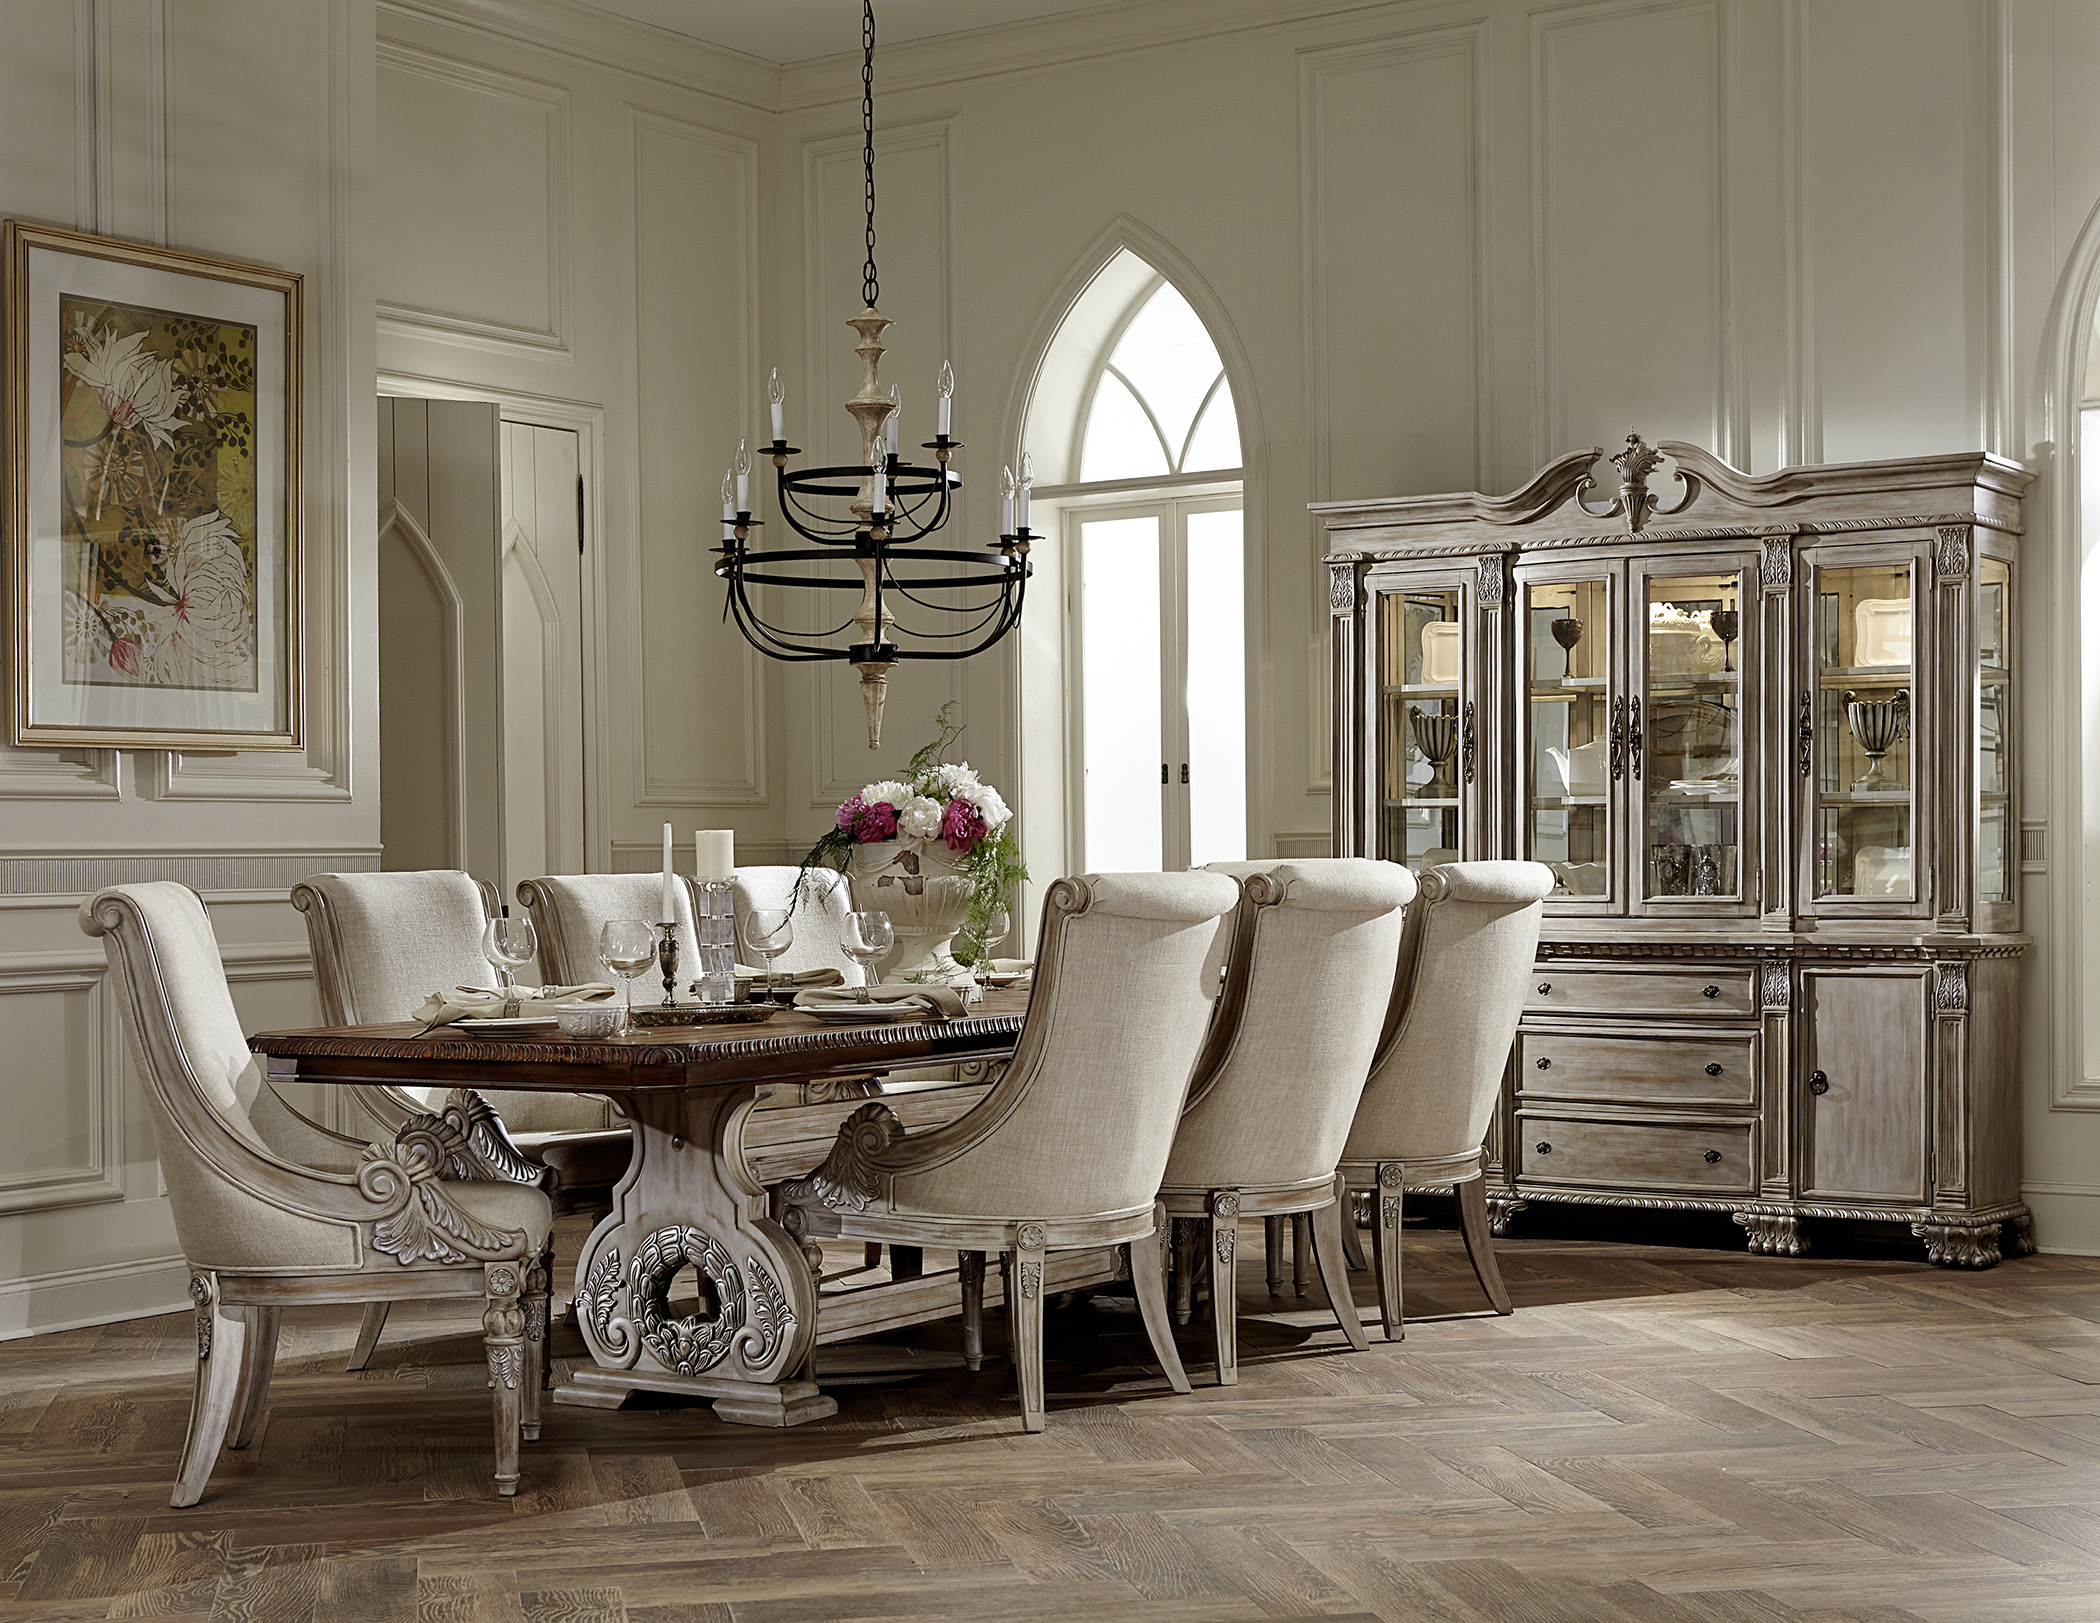 nice dining room furniture. nice dining room furniture - & Nice Dining Room Furniture Nice Dining Room Furniture - - Locutus.co